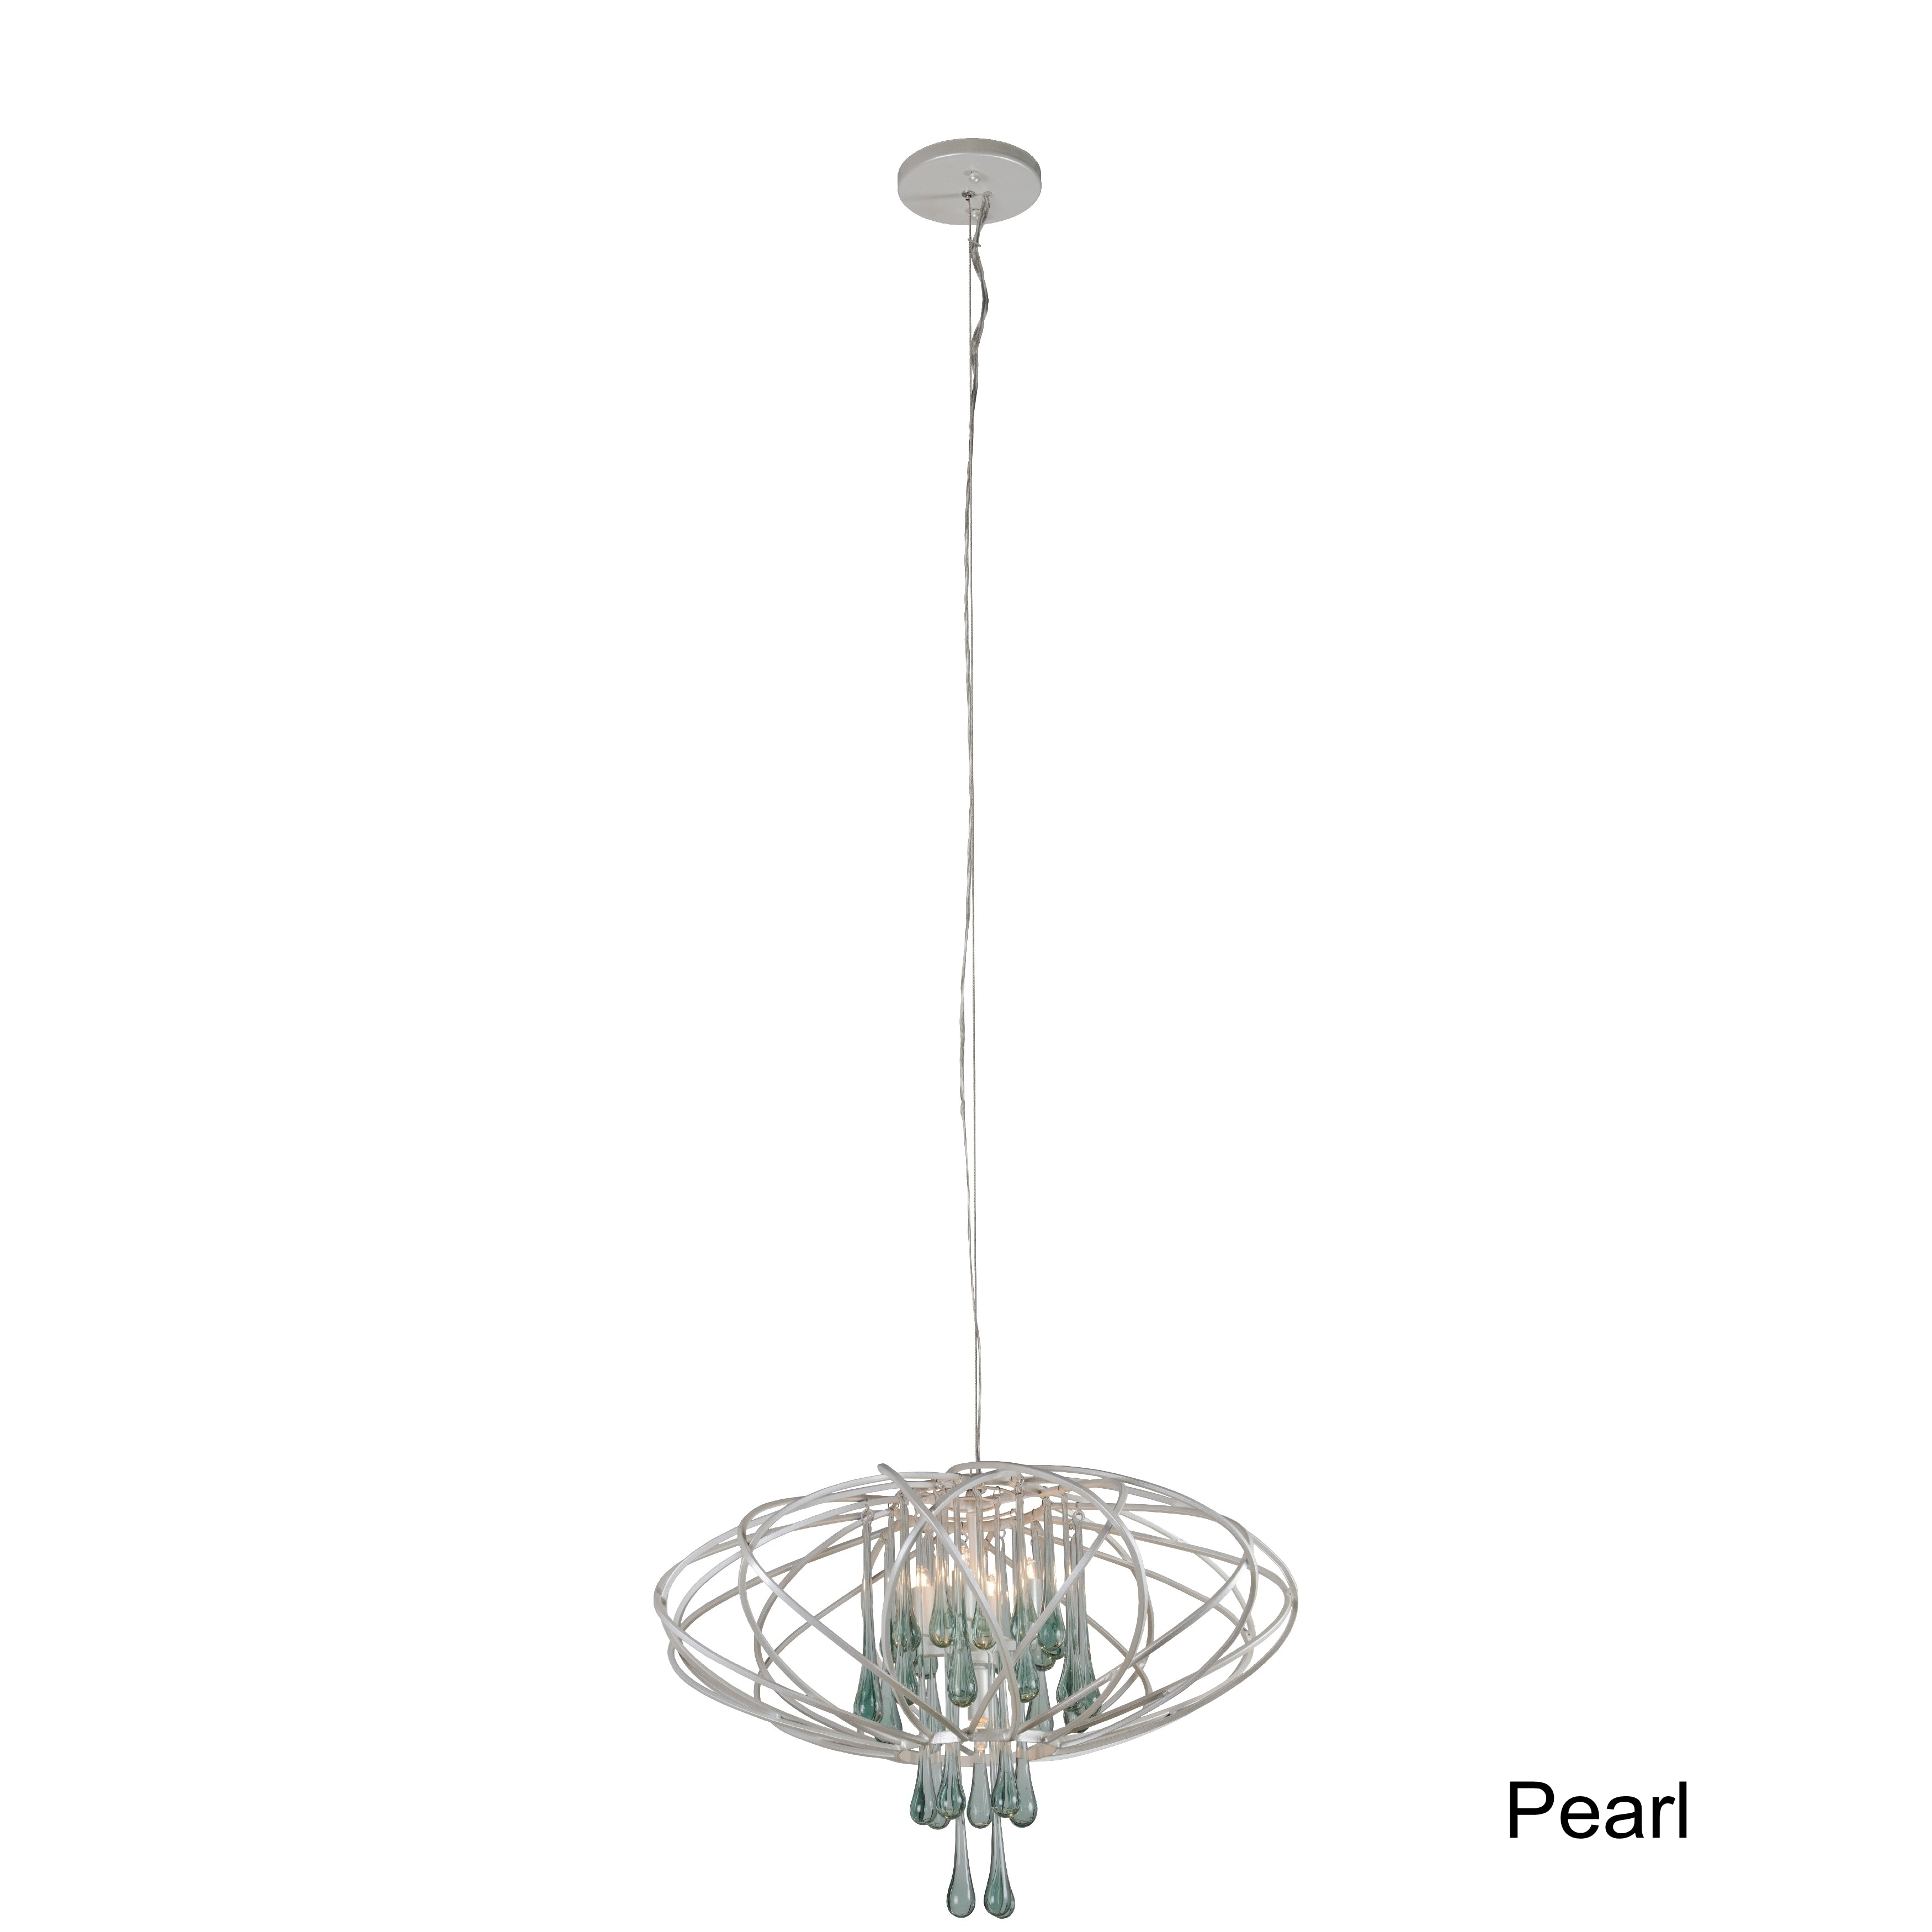 lighting island light sargeant brayden kitchen pendant wayfair pdx reviews studio